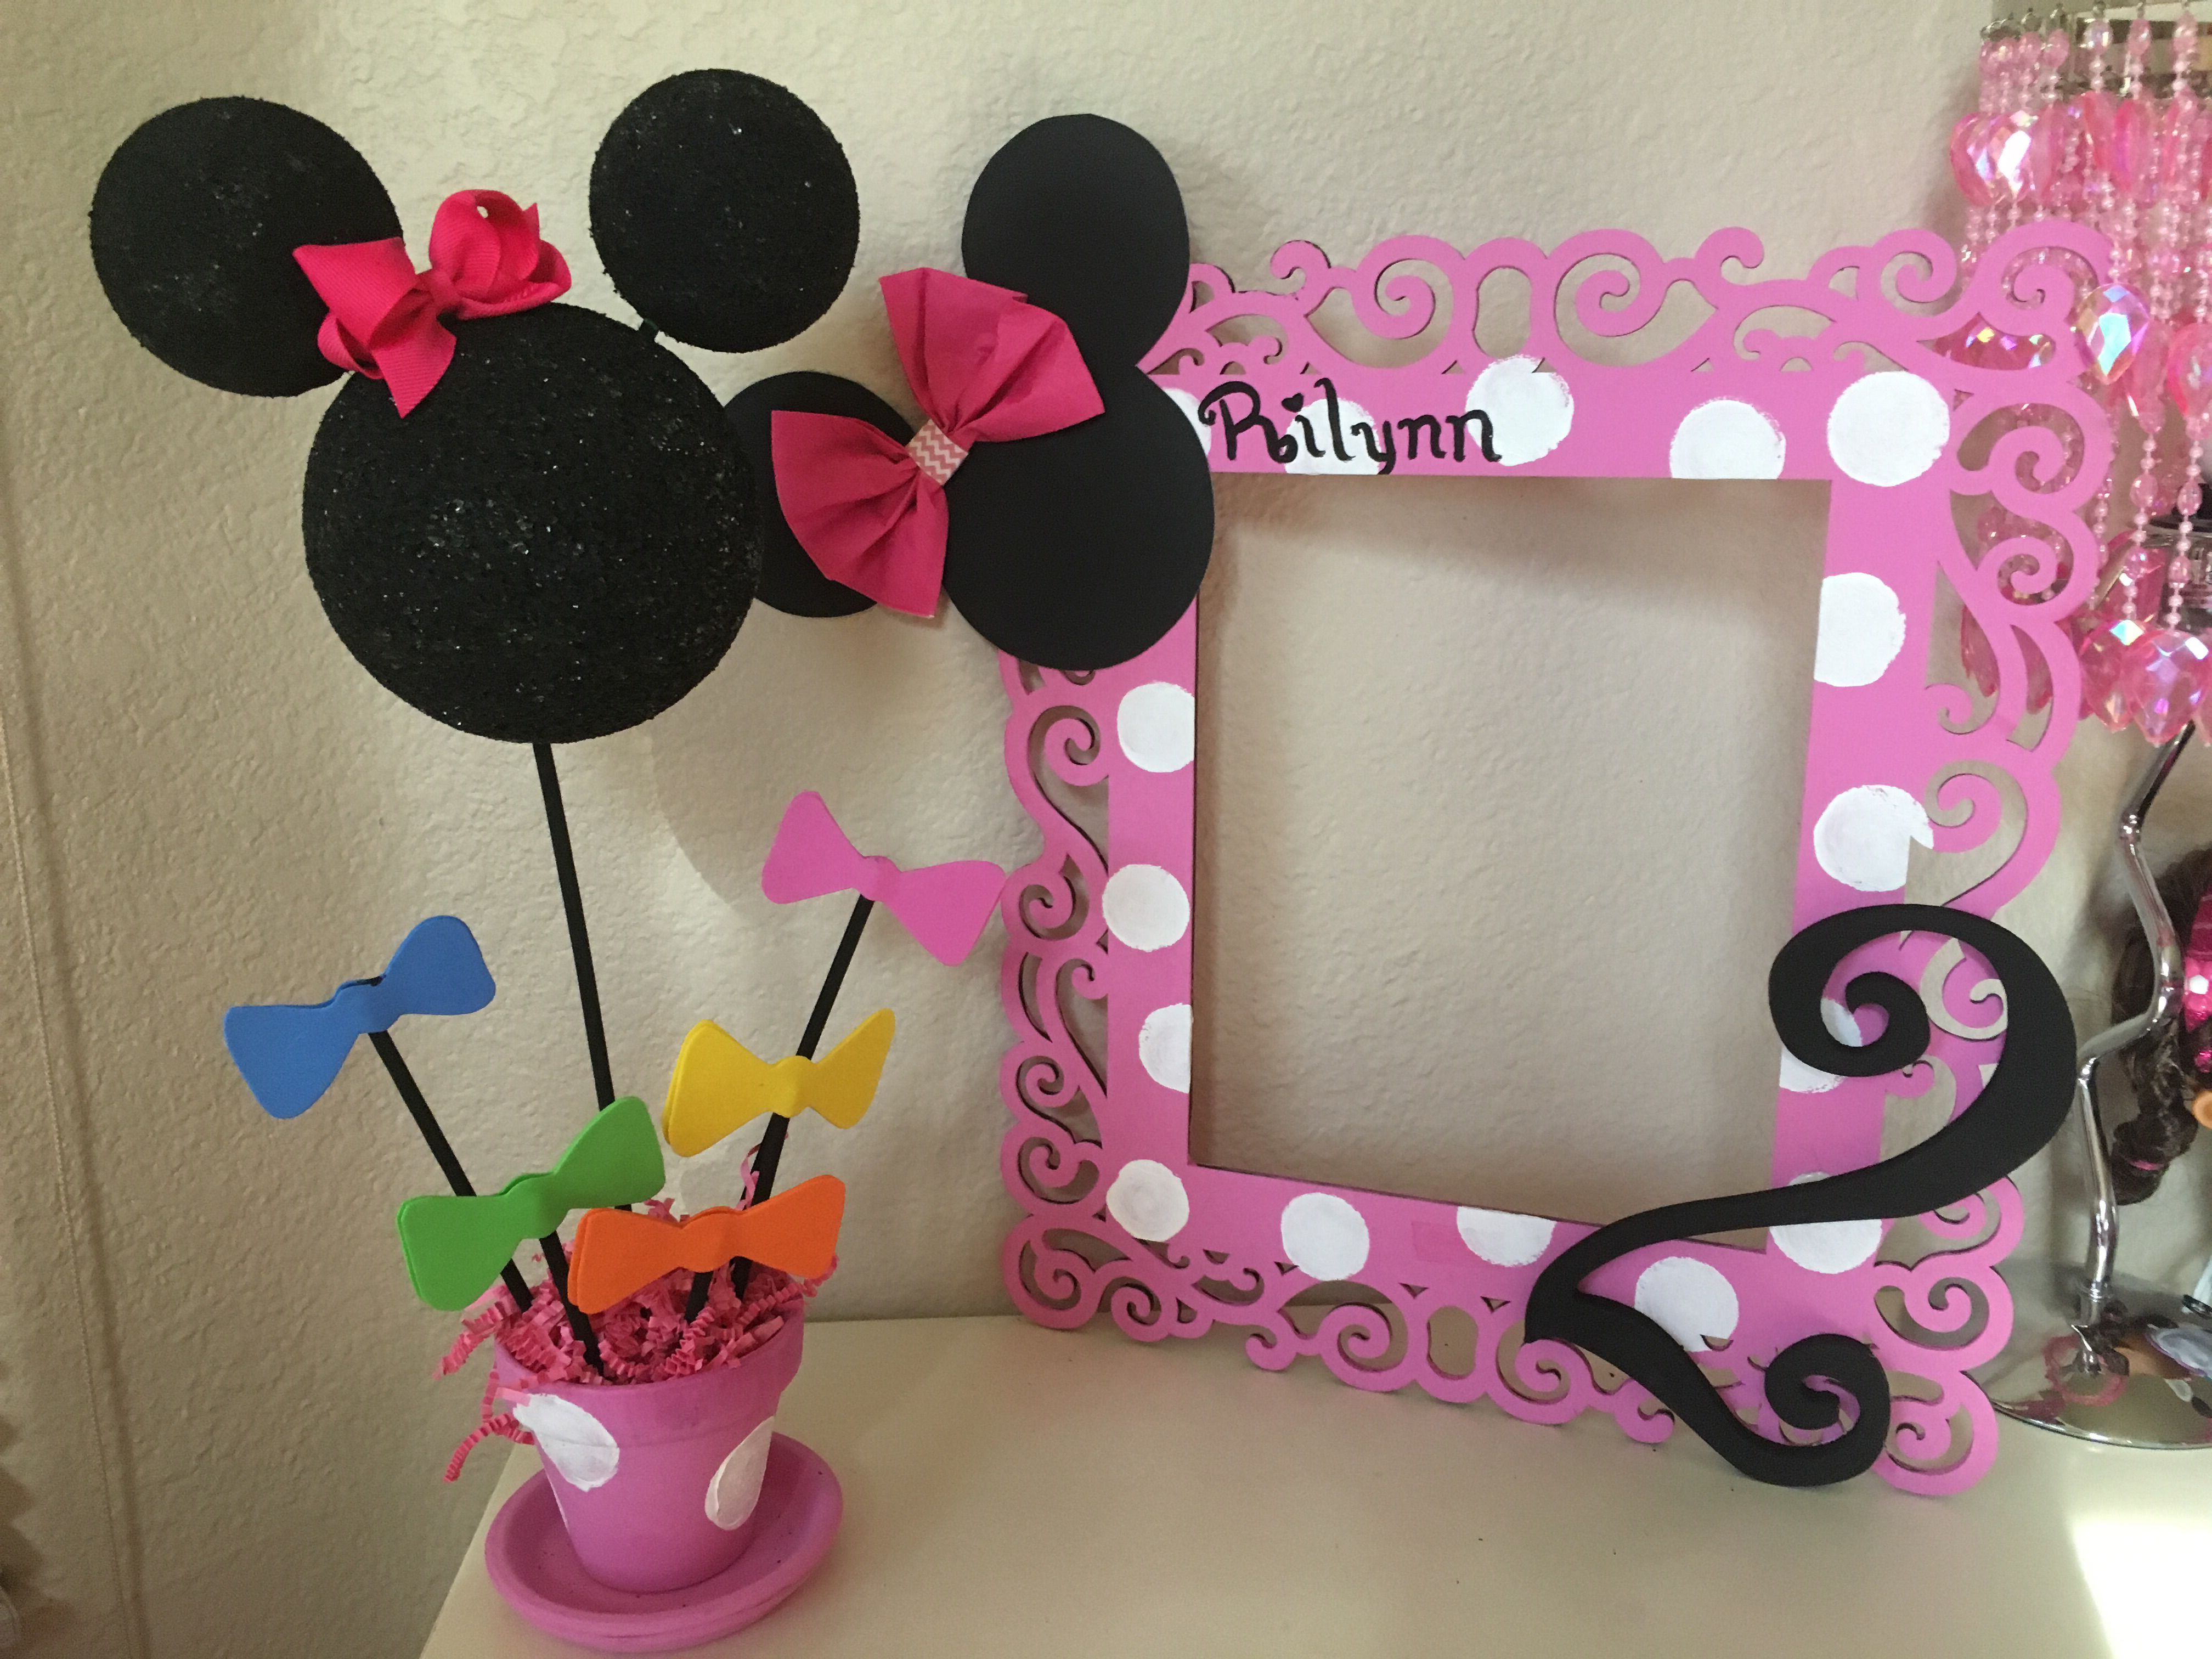 Two year old minnie mouse theme party decorations rilynn for 2nd birthday party decoration